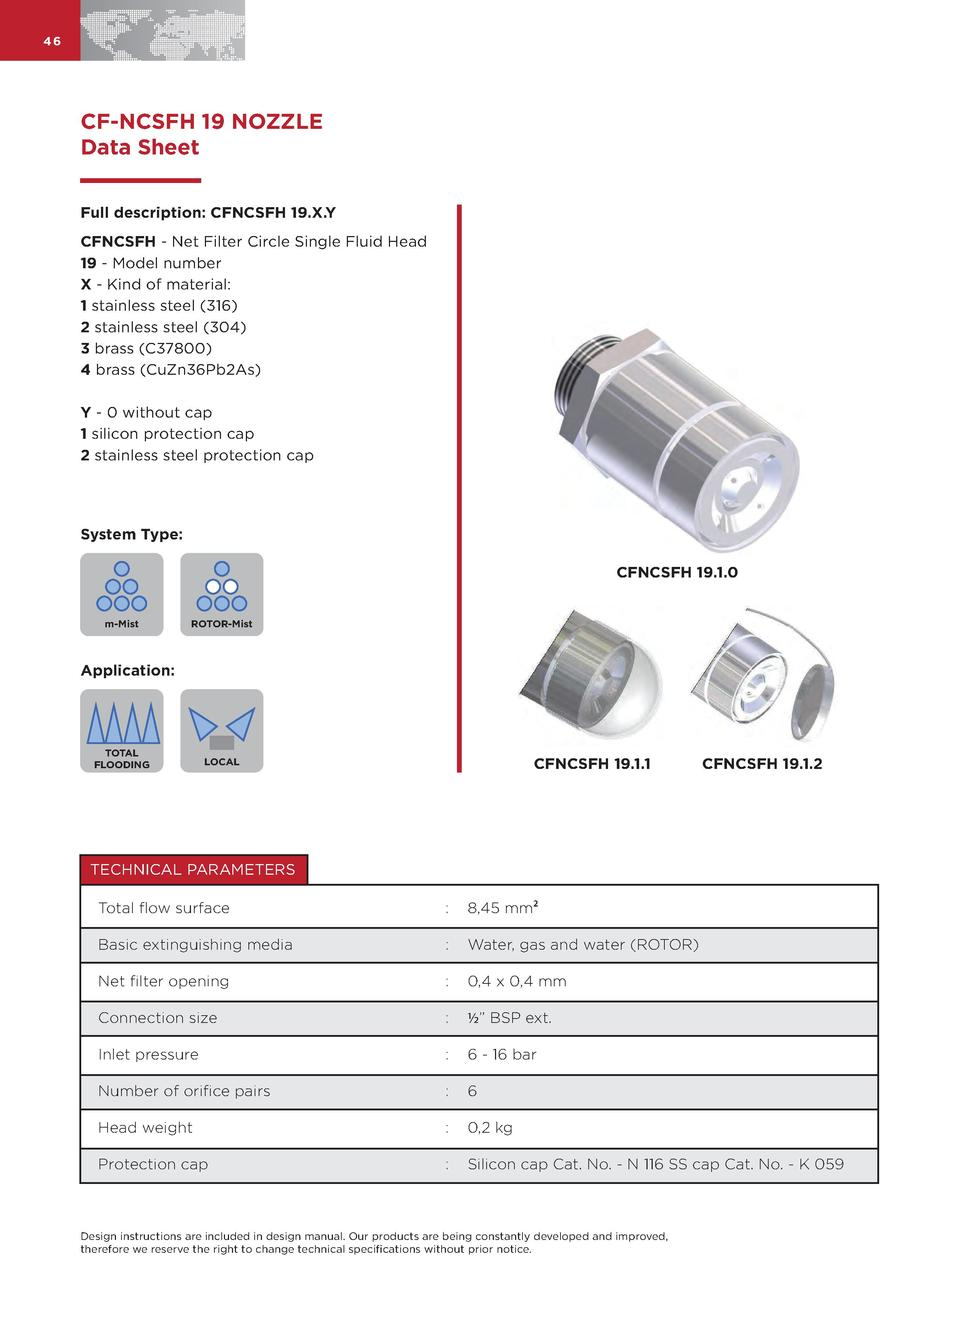 46  CF-NCSFH 19 NOZZLE Data Sheet Full description  CFNCSFH 19.X.Y CFNCSFH - Net Filter Circle Single Fluid Head 19 - Mode...